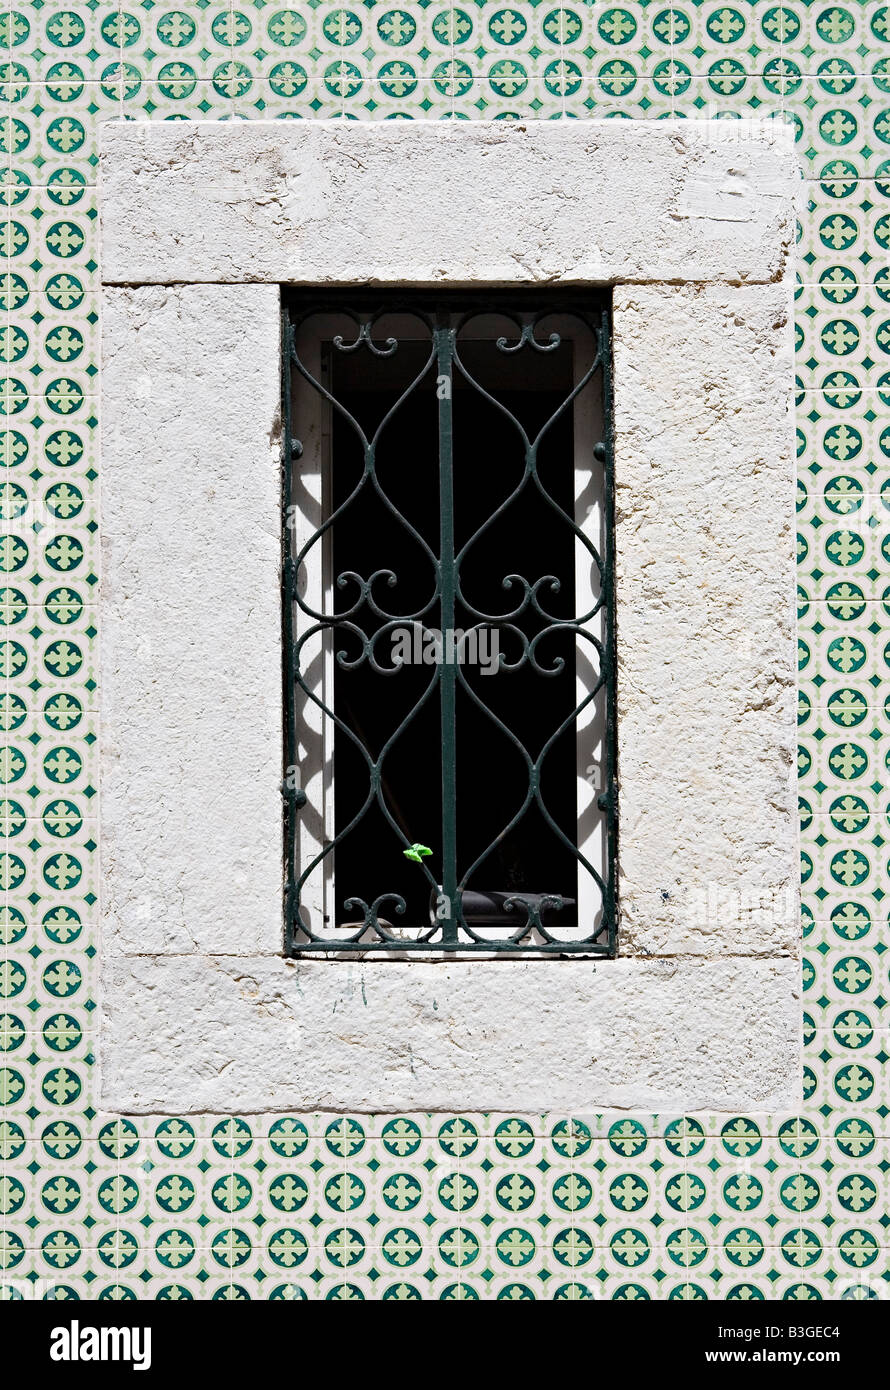 Azulejos tiles in Lisbon Portugal - Stock Image